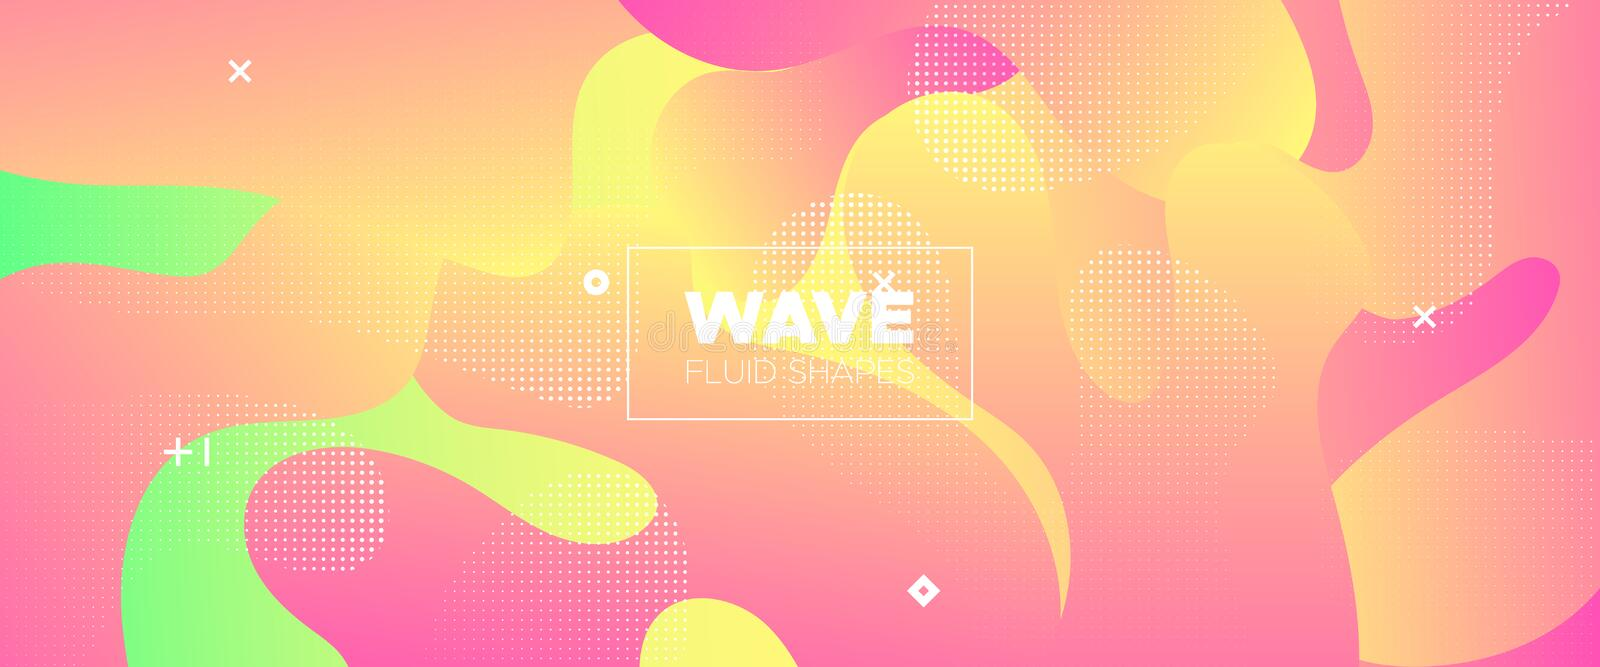 Abstract Flow Design. Vivid Gradient Brochure. Dotted Graphic Movement. Digital Template. Abstract Fluid Pattern. Minimal Poster. Vector Illustration royalty free illustration